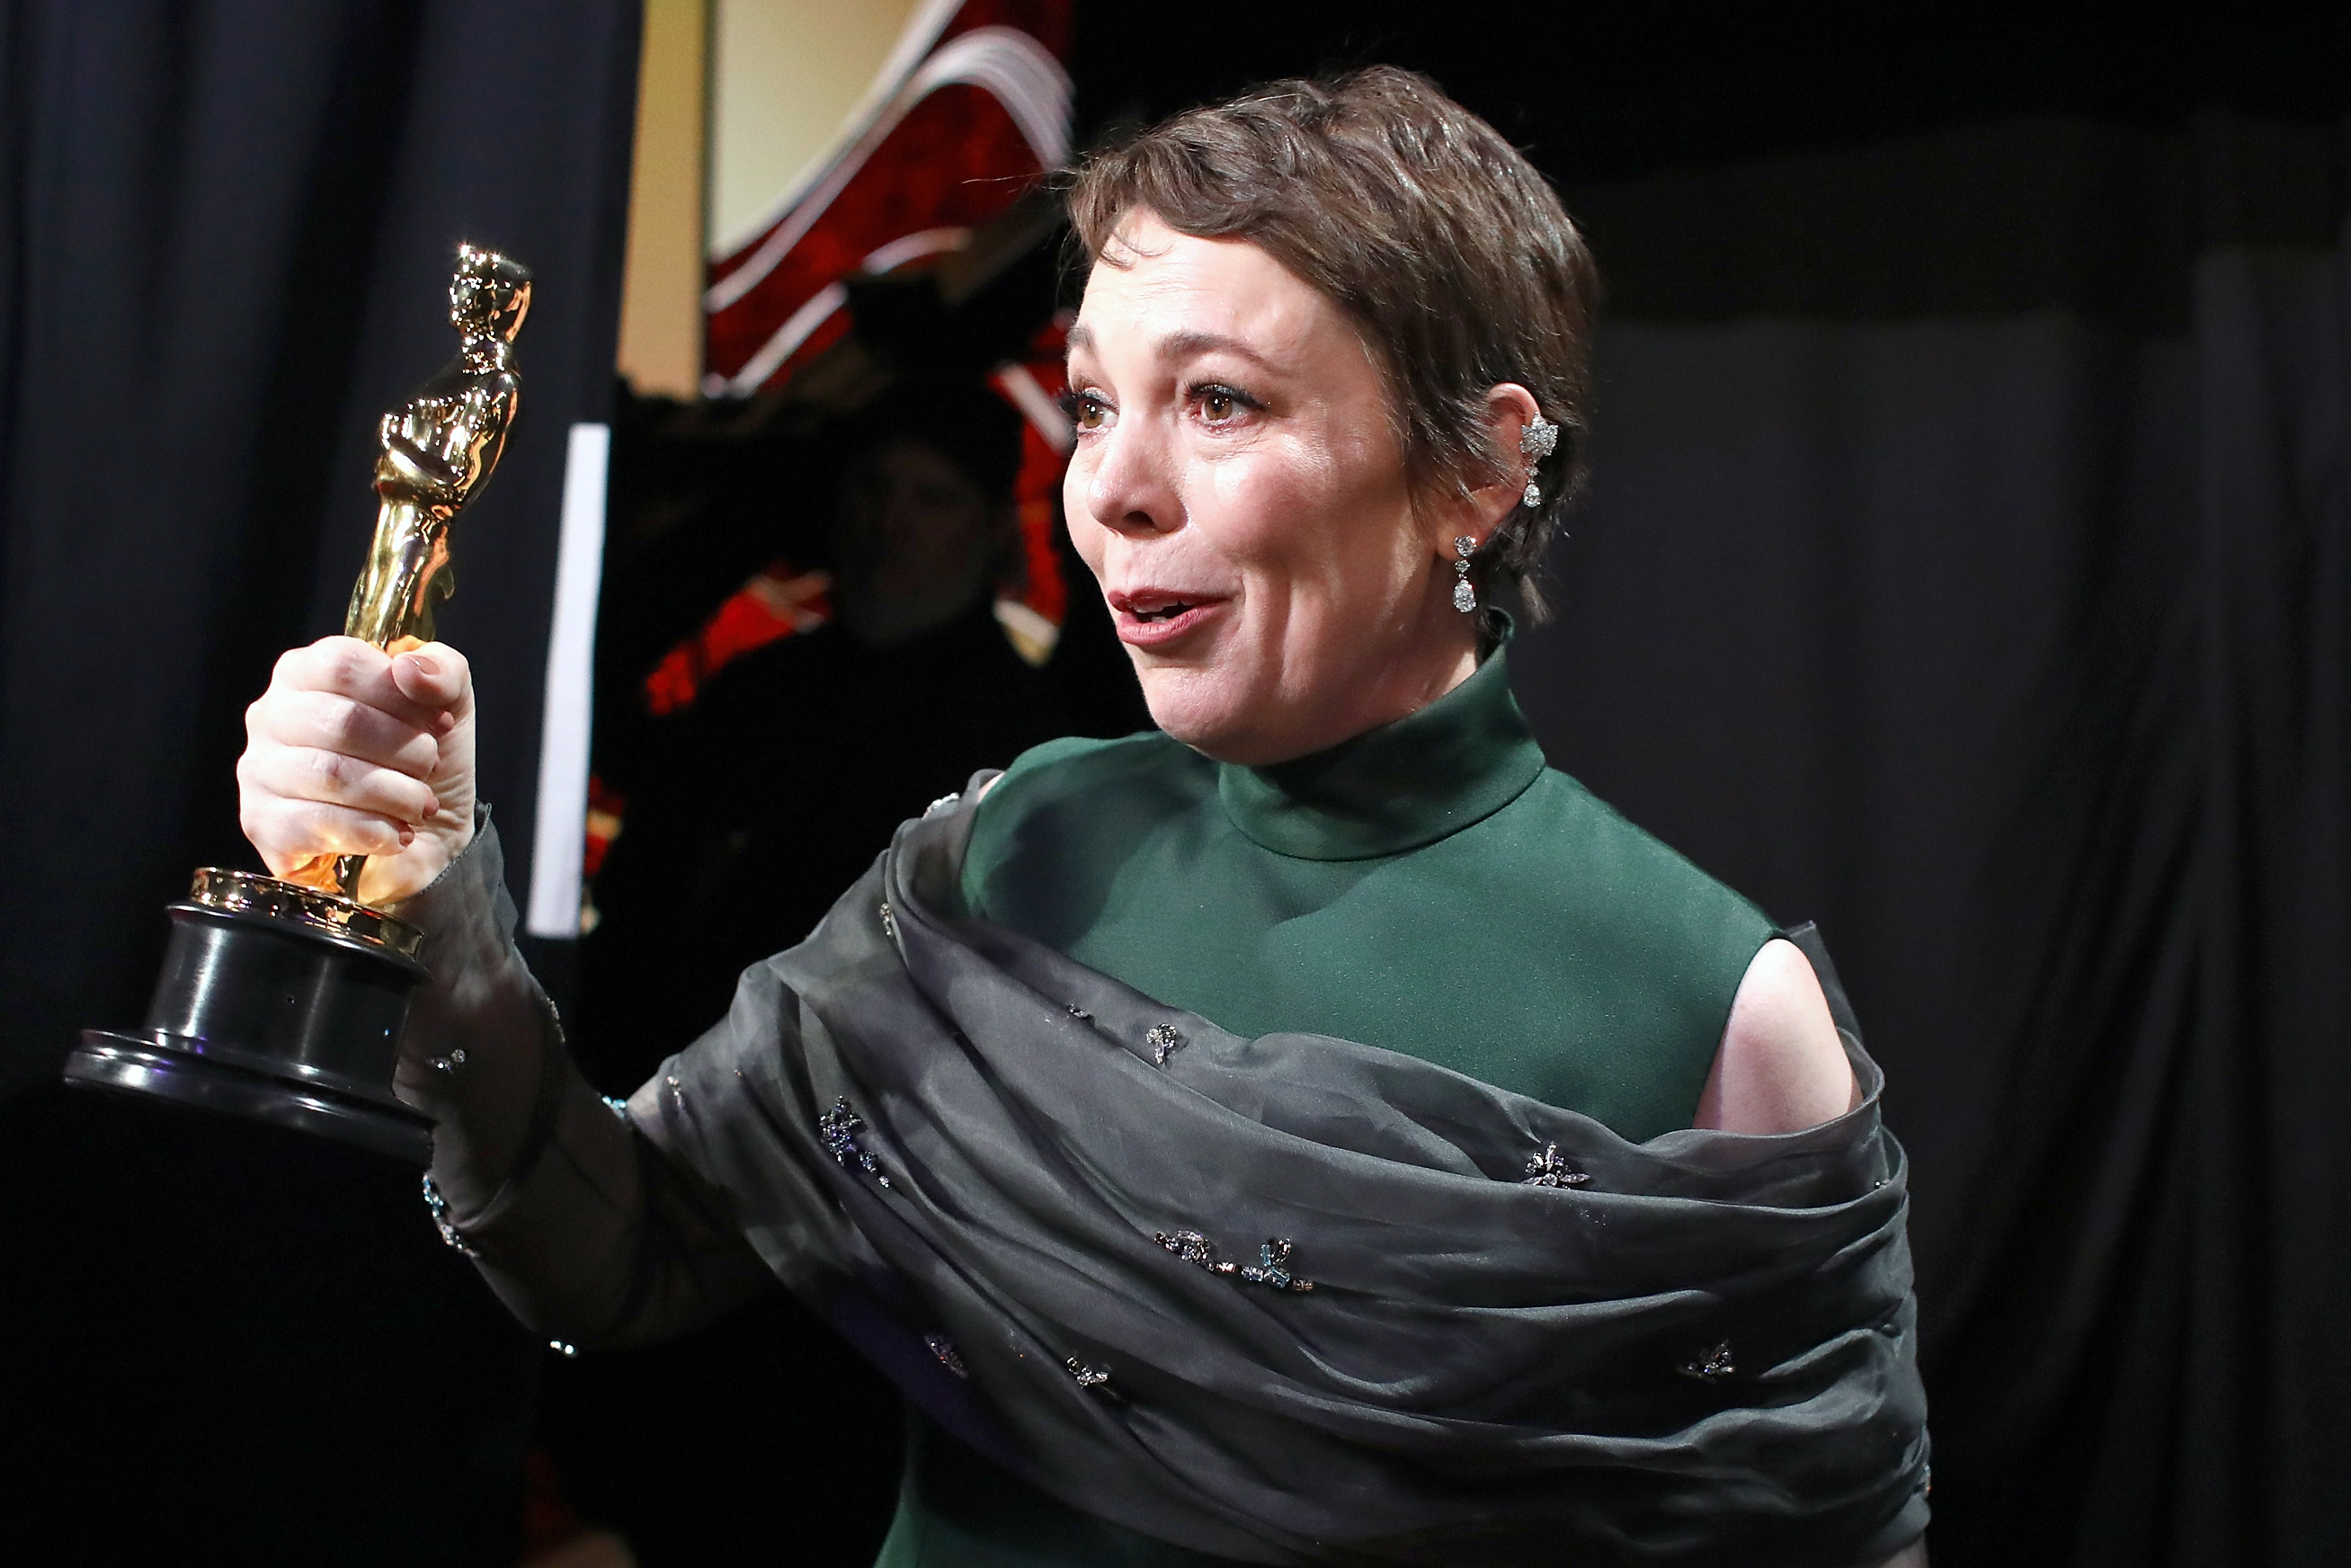 HOLLYWOOD, CA - FEBRUARY 24:  In this handout provided by A.M.P.A.S., Olivia Colman poses with the award for Actress in a Leading Role for 'The Favourite' backstage during the 91st Annual Academy Awards at the Dolby Theatre on February 24, 2019 in Hollywood, California.  (Photo by Matt Sayles - Handout/A.M.P.A.S. via Getty Images)